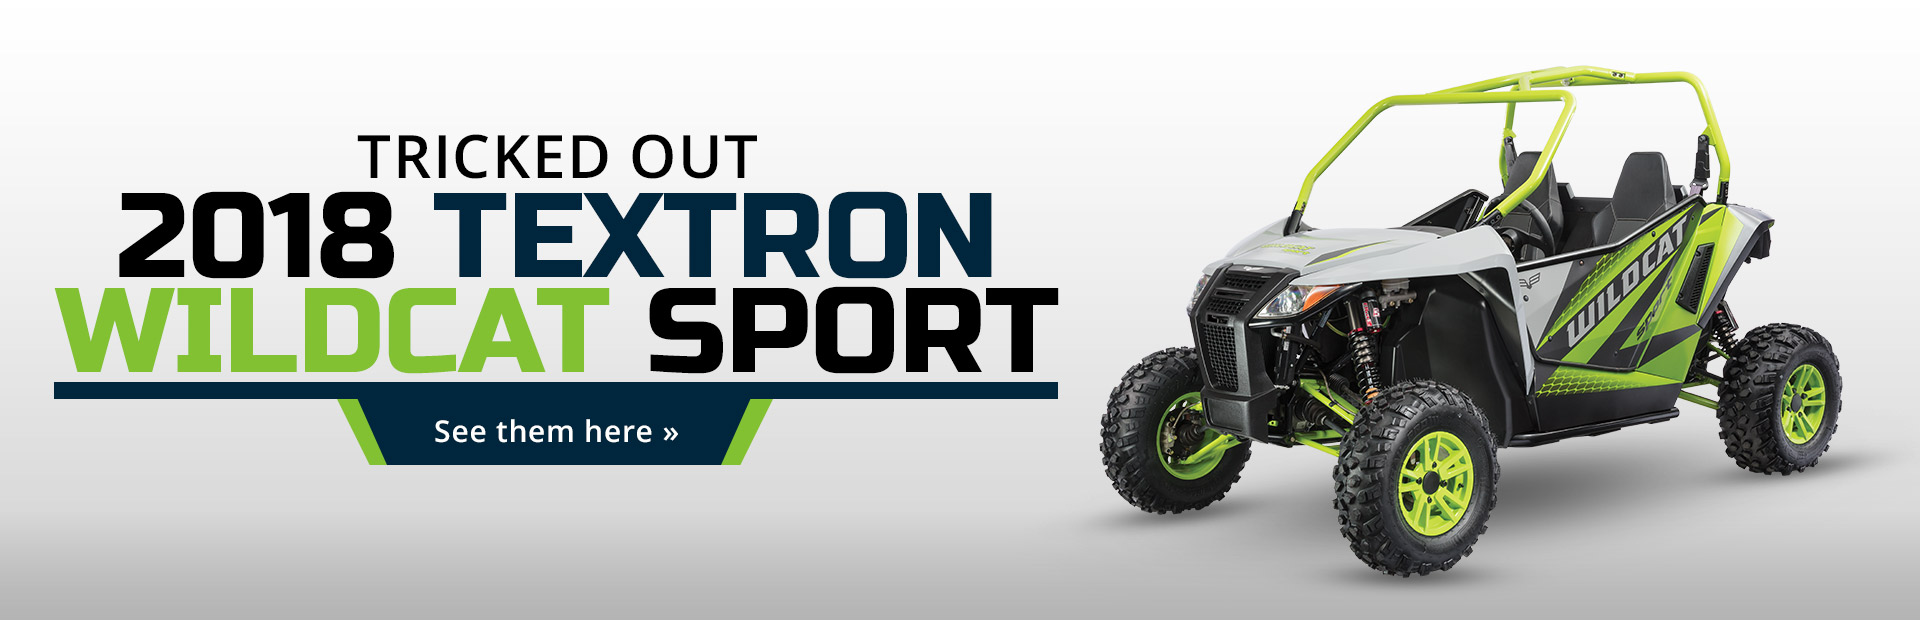 2018 Textron Wildcat Sport: Click here to view the models.